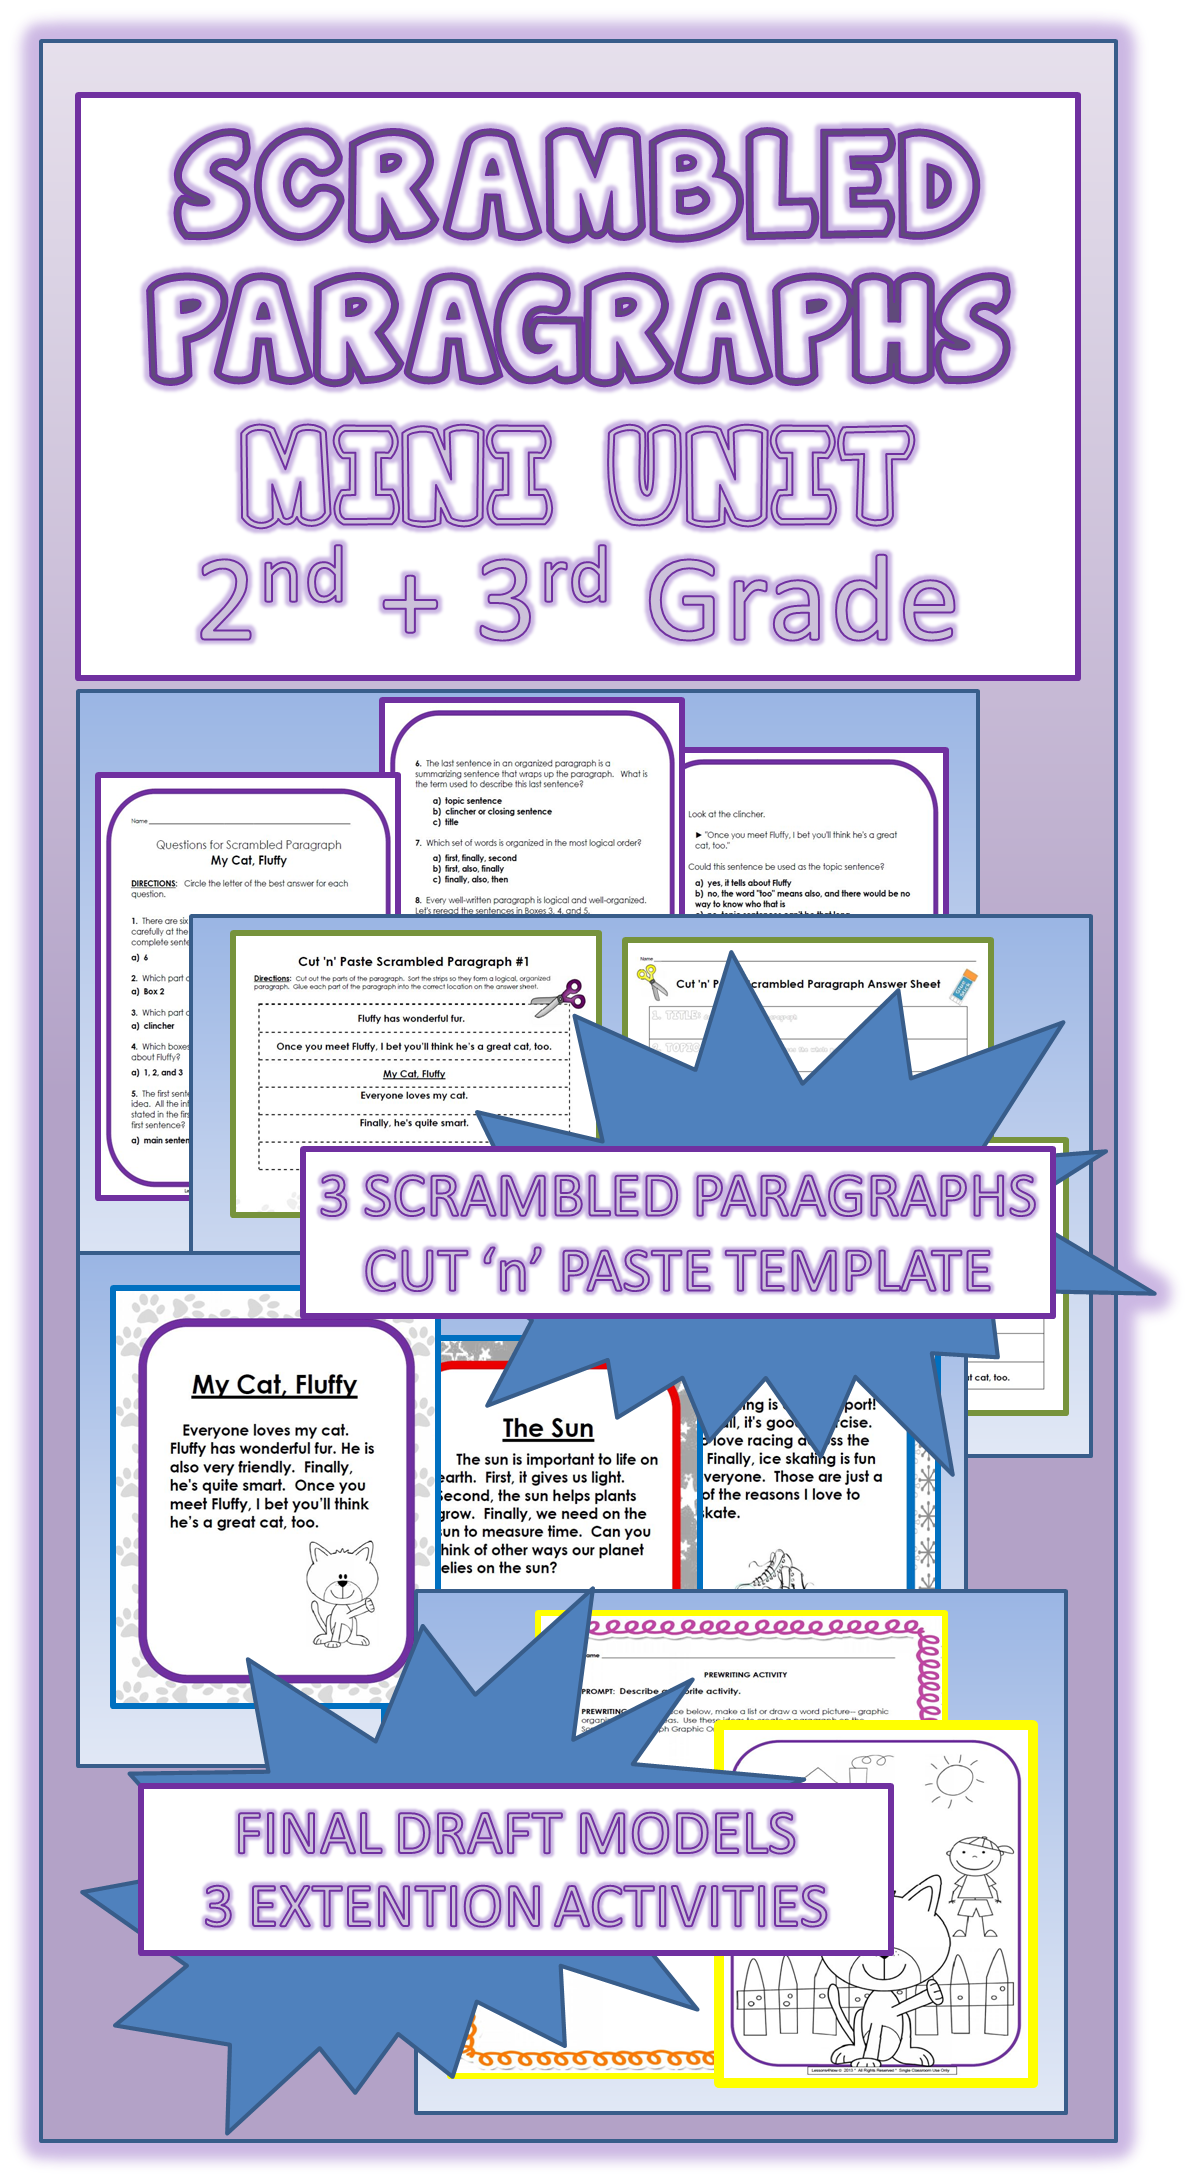 Scrambled Paragraphs Mini Unit Early Elementary Edition